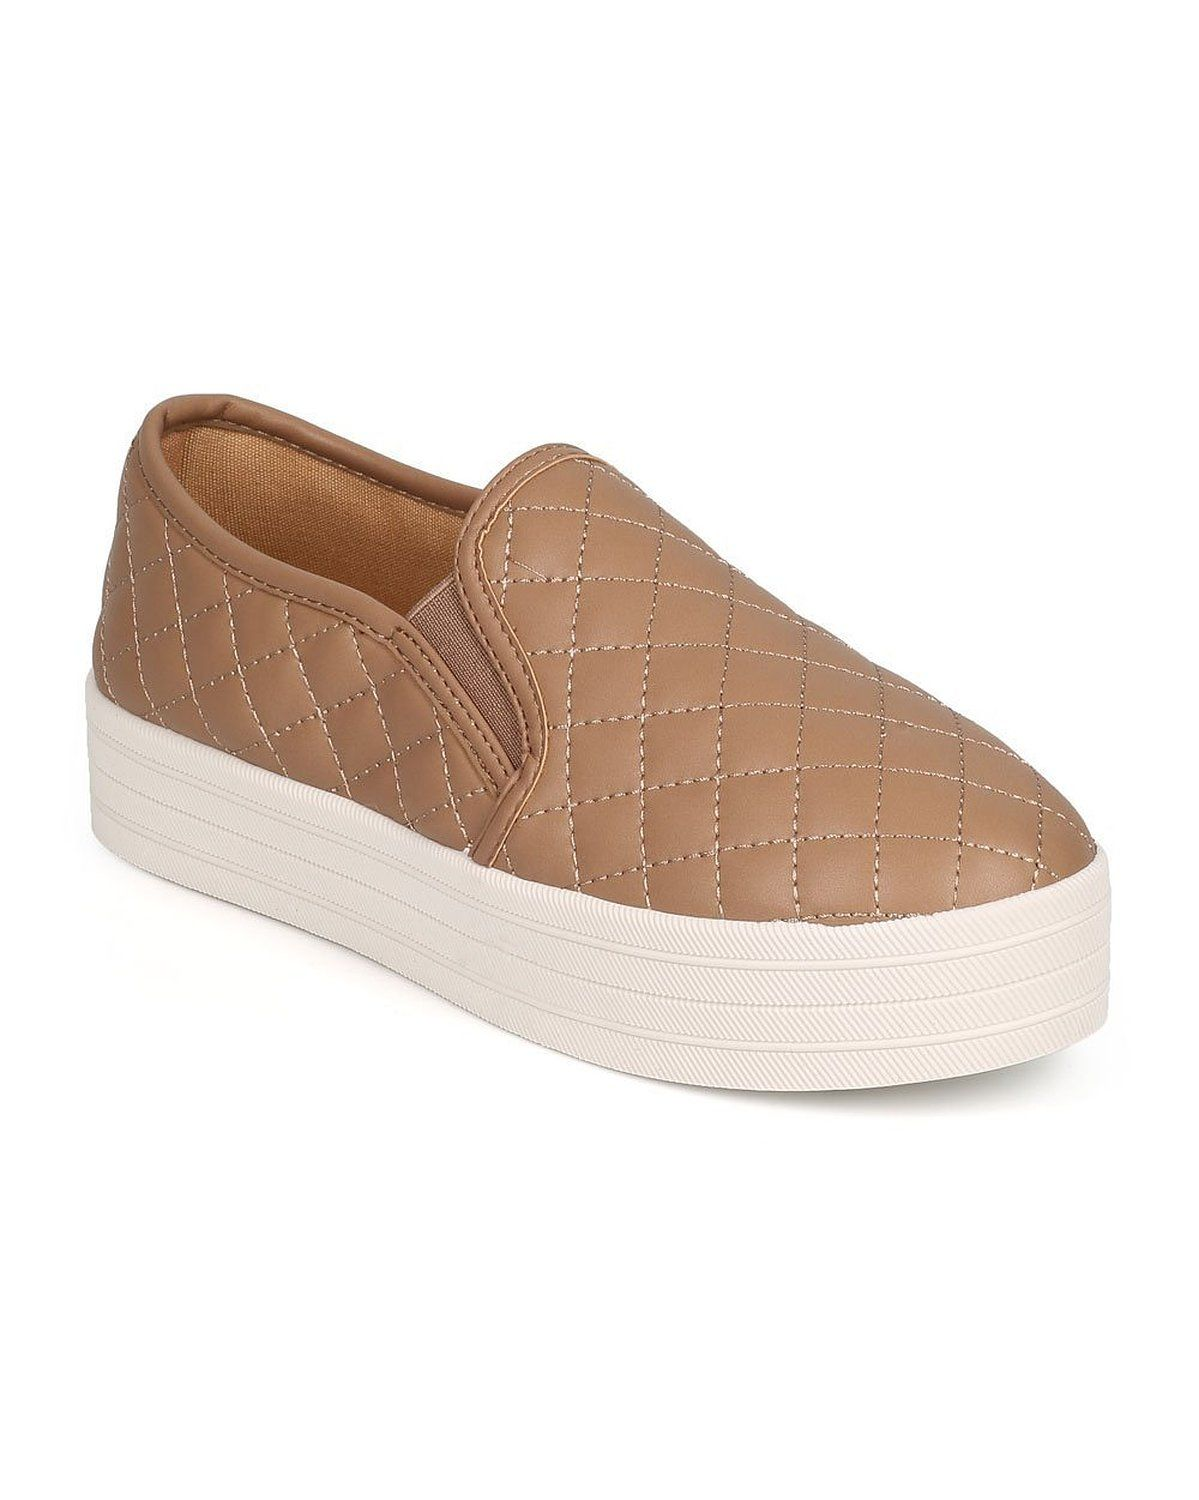 2a5fcb2a88a725 Breckelles DH58 Women Leatherette Quilted Round Toe Platform Slip On Sneaker  - Natural     You can get additional details at the image link.